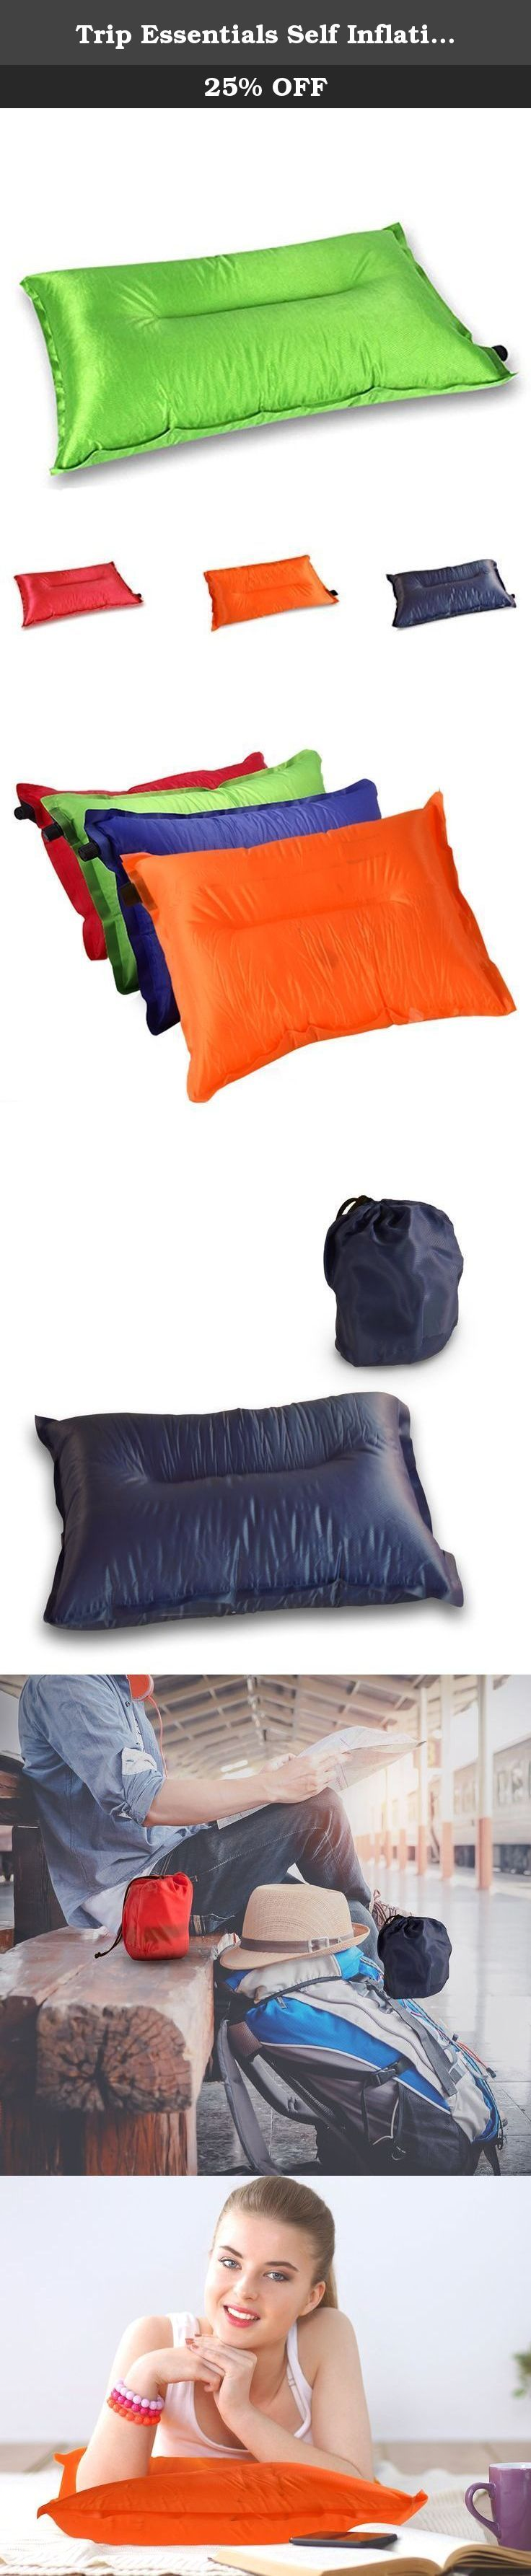 Trip Essentials Self Inflating Pillow, Comfortable Inflatable Pillow for Traveling and Outdoors (Green). This travel pillow by Trip Essentials is all you need for a comfortable and relaxing experience when traveling. Planes, Trains, and Automobiles alike this pillow is great for any travel occasions. This is a must have item for camping! The pillow's design consists of a soft surface for pillow-top and foam interior for great head and neck support. To inflate the pillow, open the pillow's...